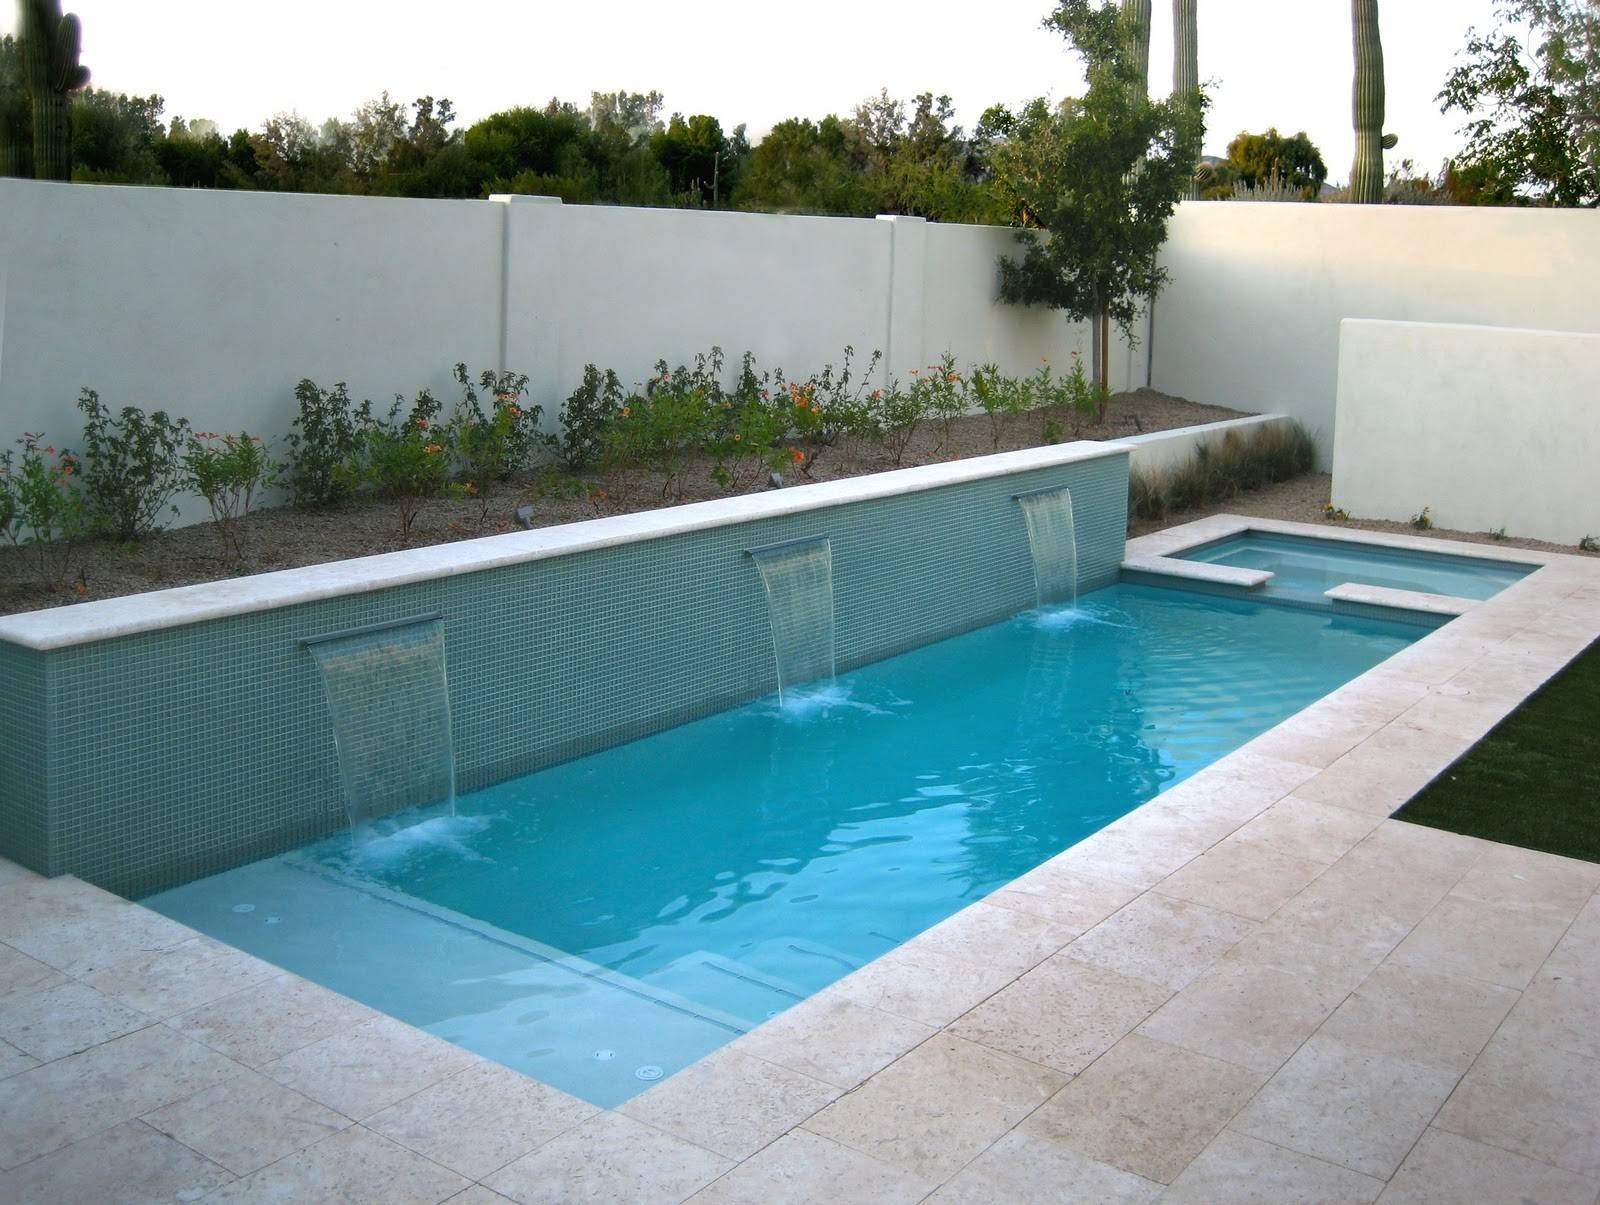 Pools Small Backyard Ideas Yard Great Pool